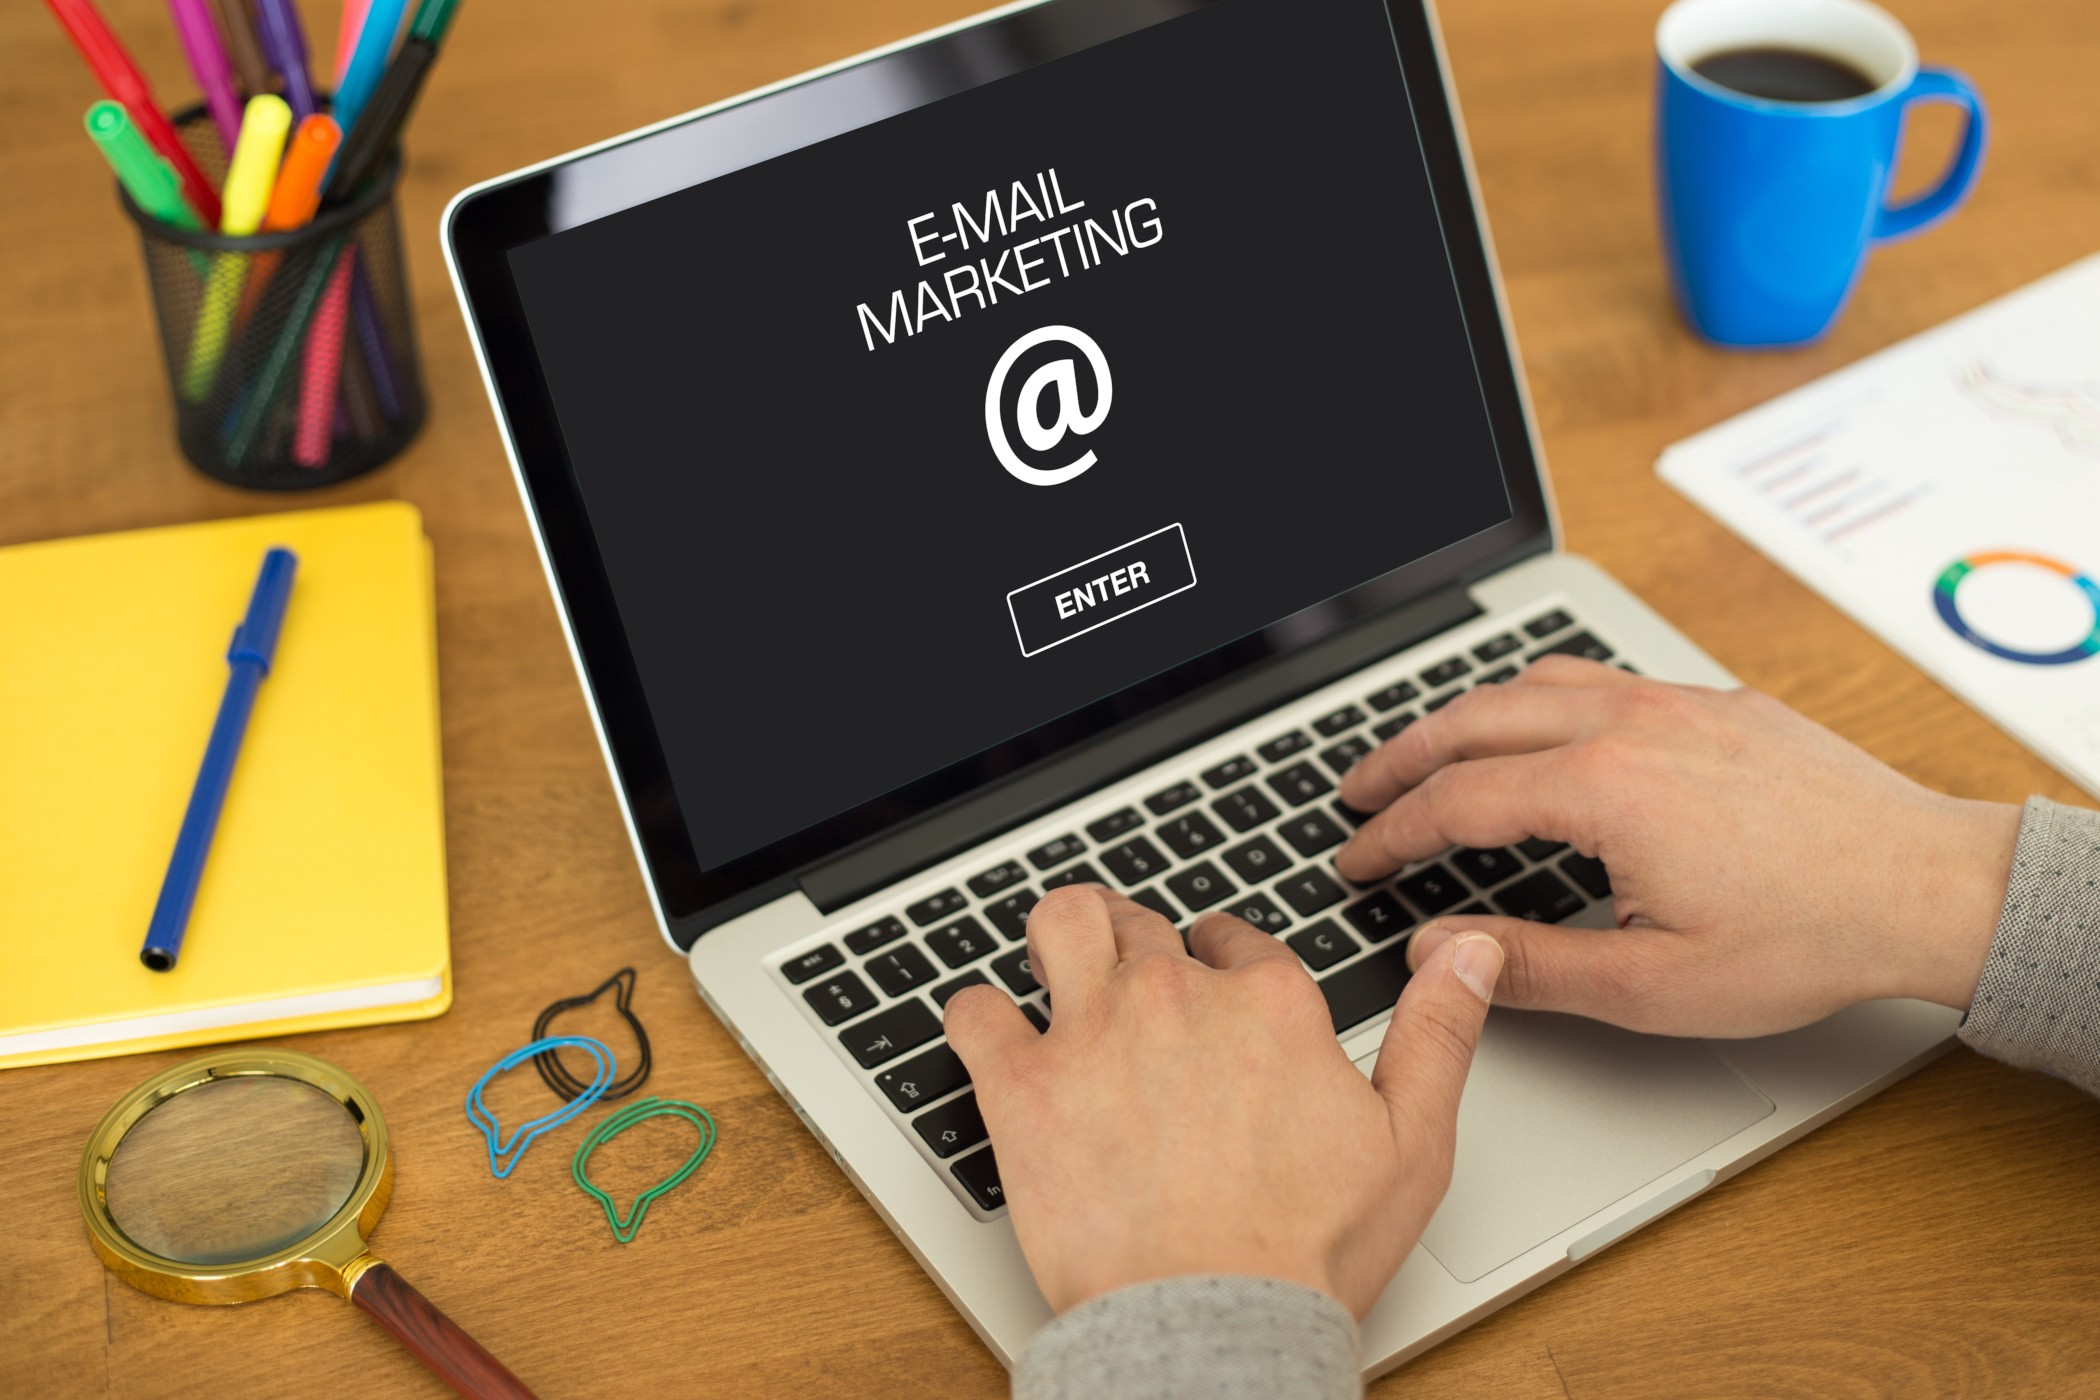 """picture of hands on keyboad of laptop with the words """"email marketing"""" displayed and the @ sign"""